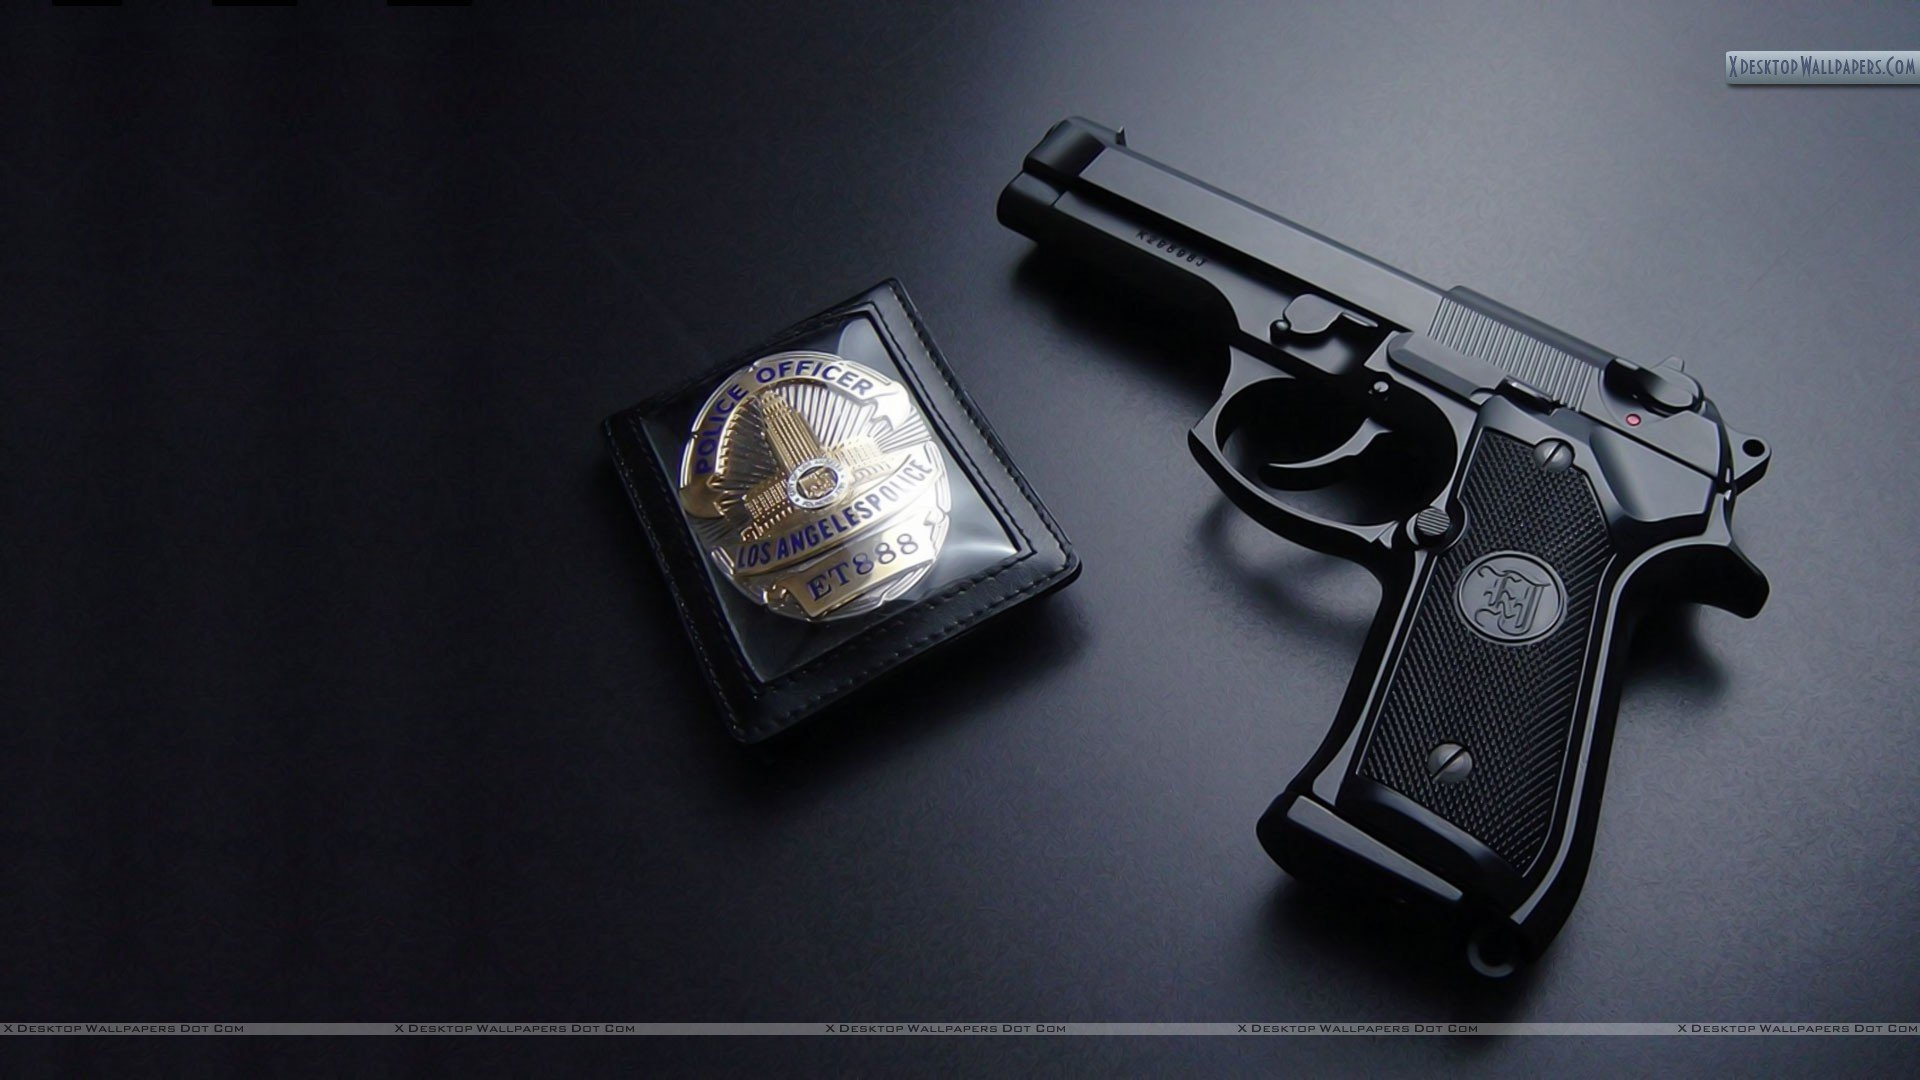 Los Angels Police Gun With Badge Wallpaper 1920x1080